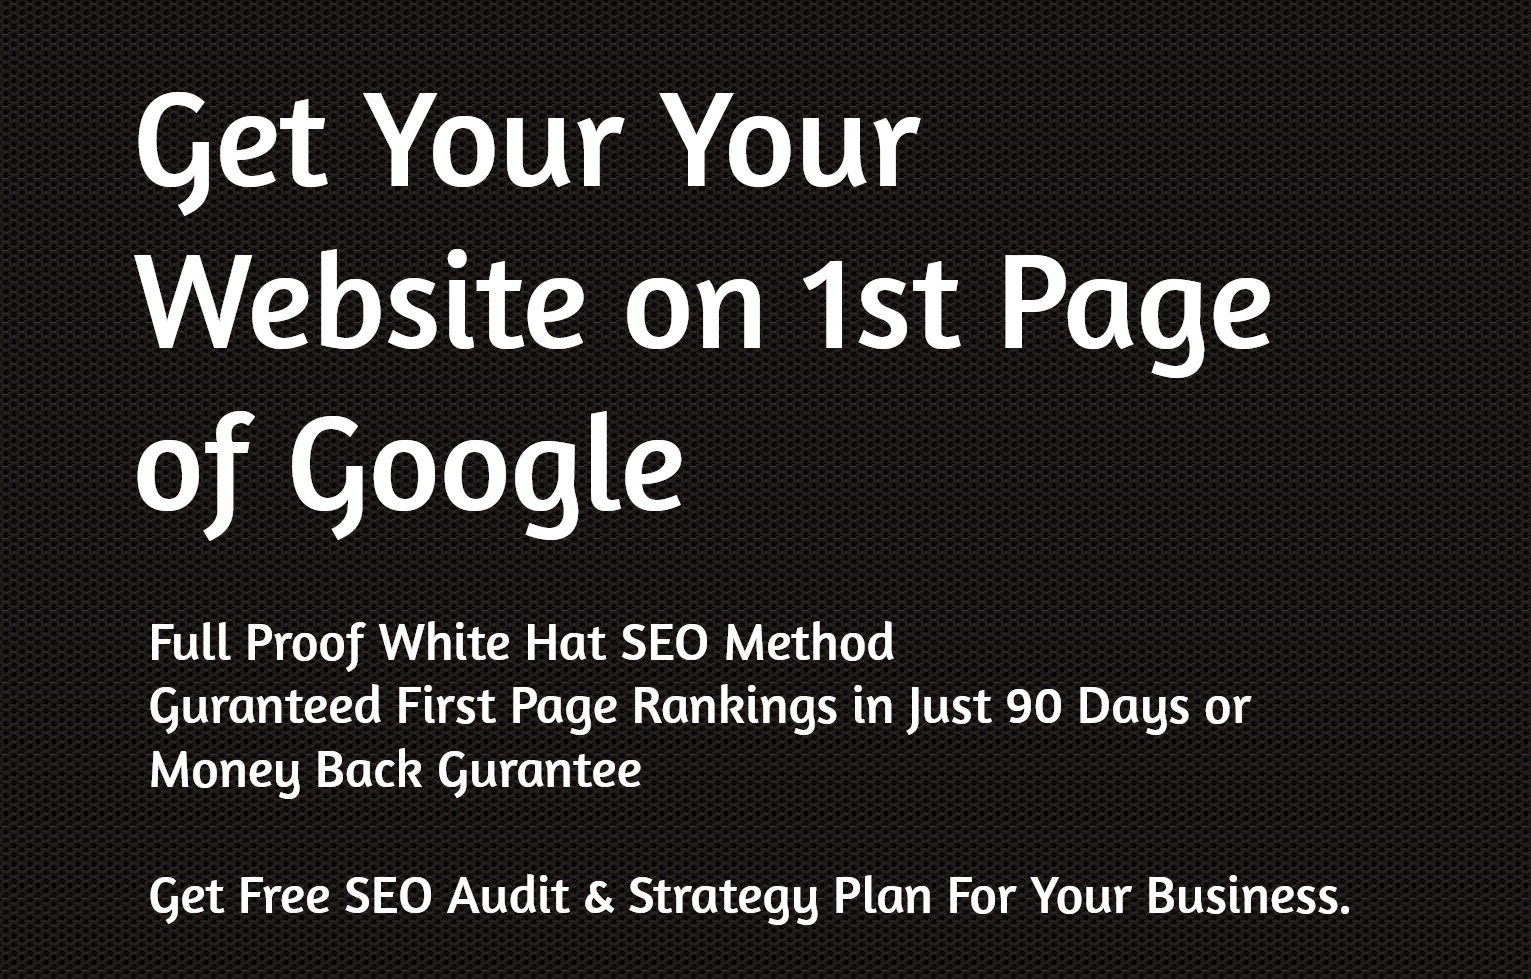 White Label SEO Services - Get Your Website on First Page of Google